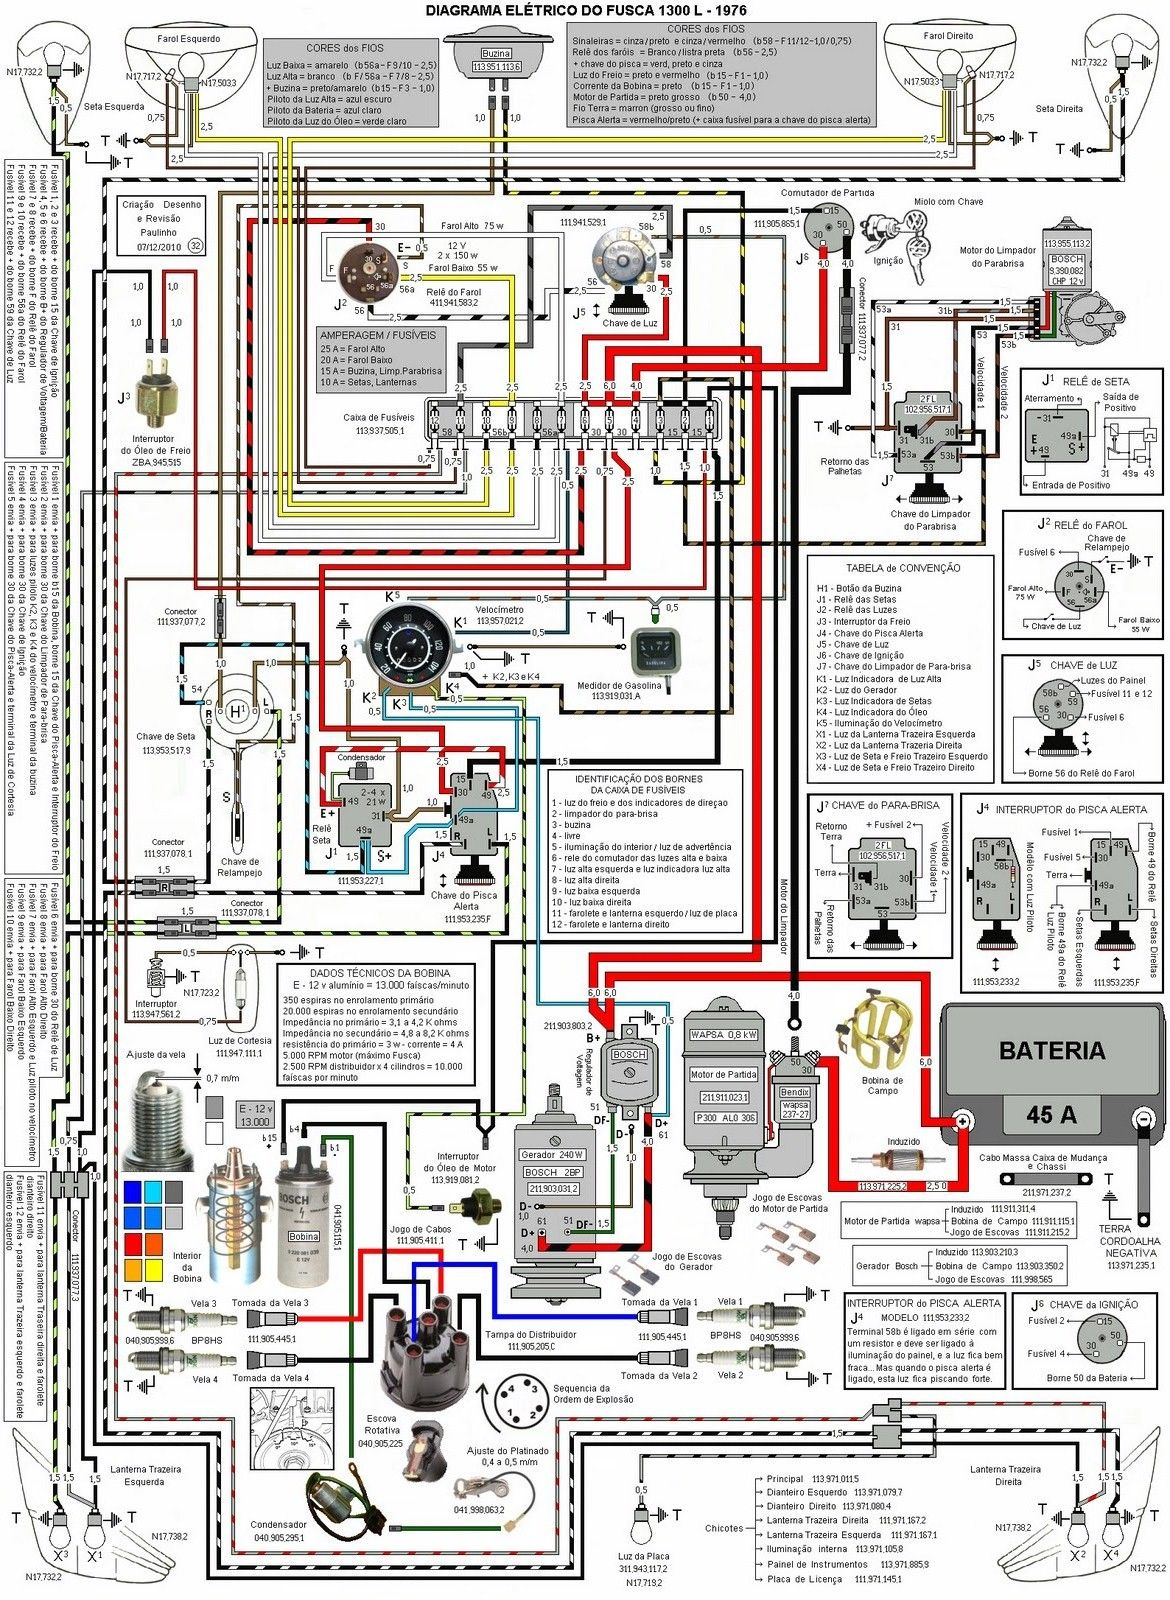 The Nice Thing About A Wiring Diagram Is You Can Figure It Out Even 2002 Beetle Door If Dont Speak Language Esquema 12 Volts Eltrico Fusca Completo